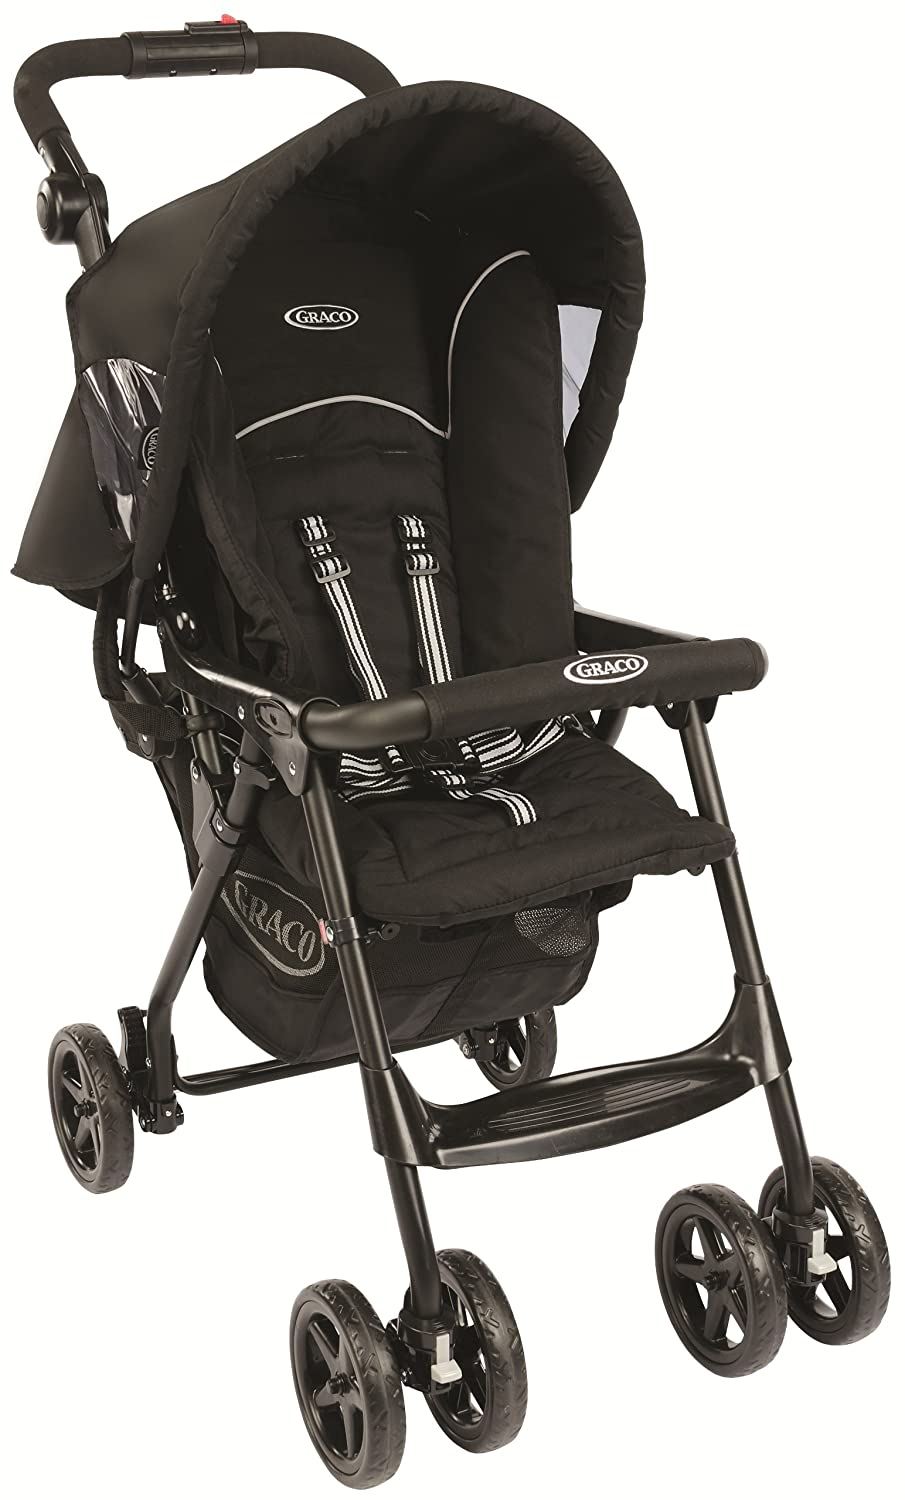 Graco CitiSport Lite Pushchair, Sport Luxe - Black 1897322